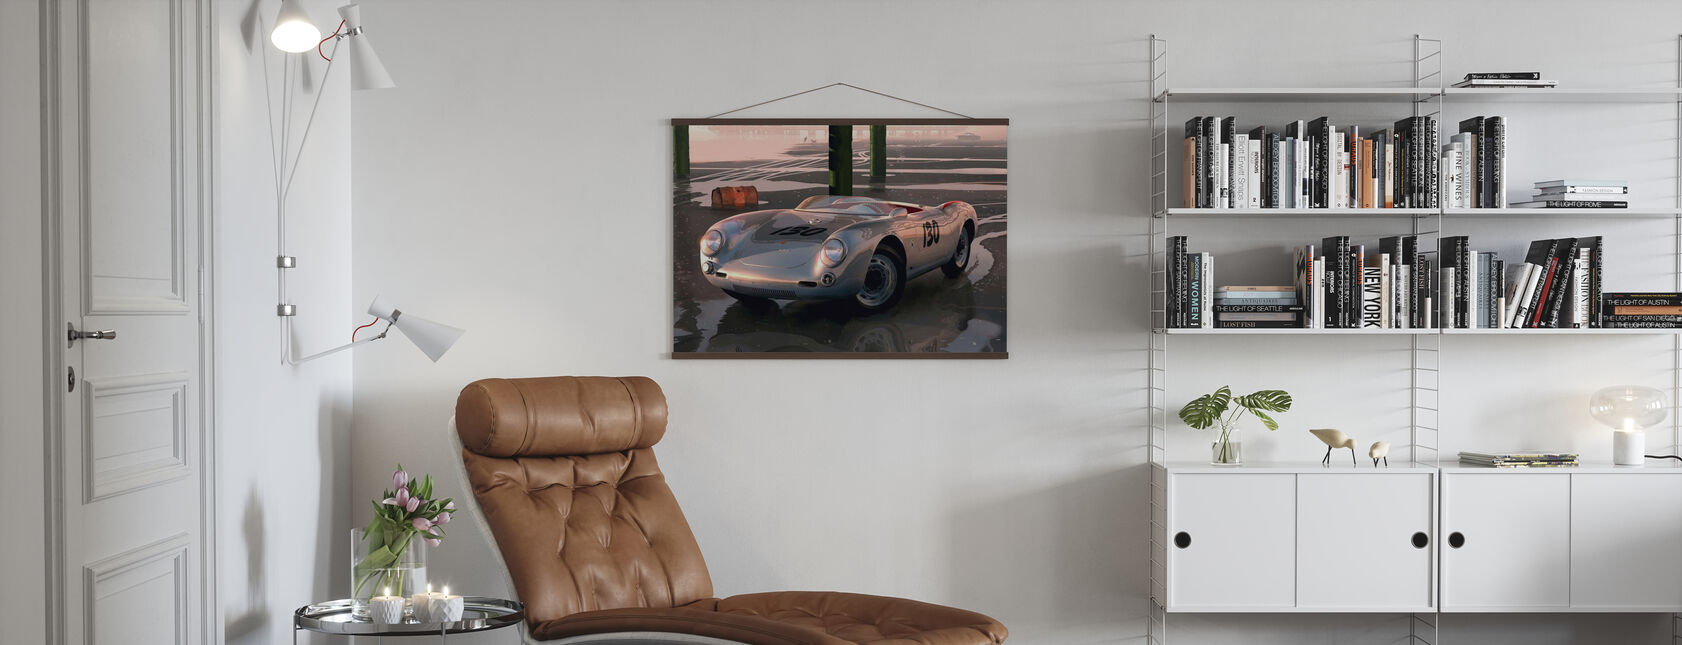 Jimmys auto - Poster - Woonkamer